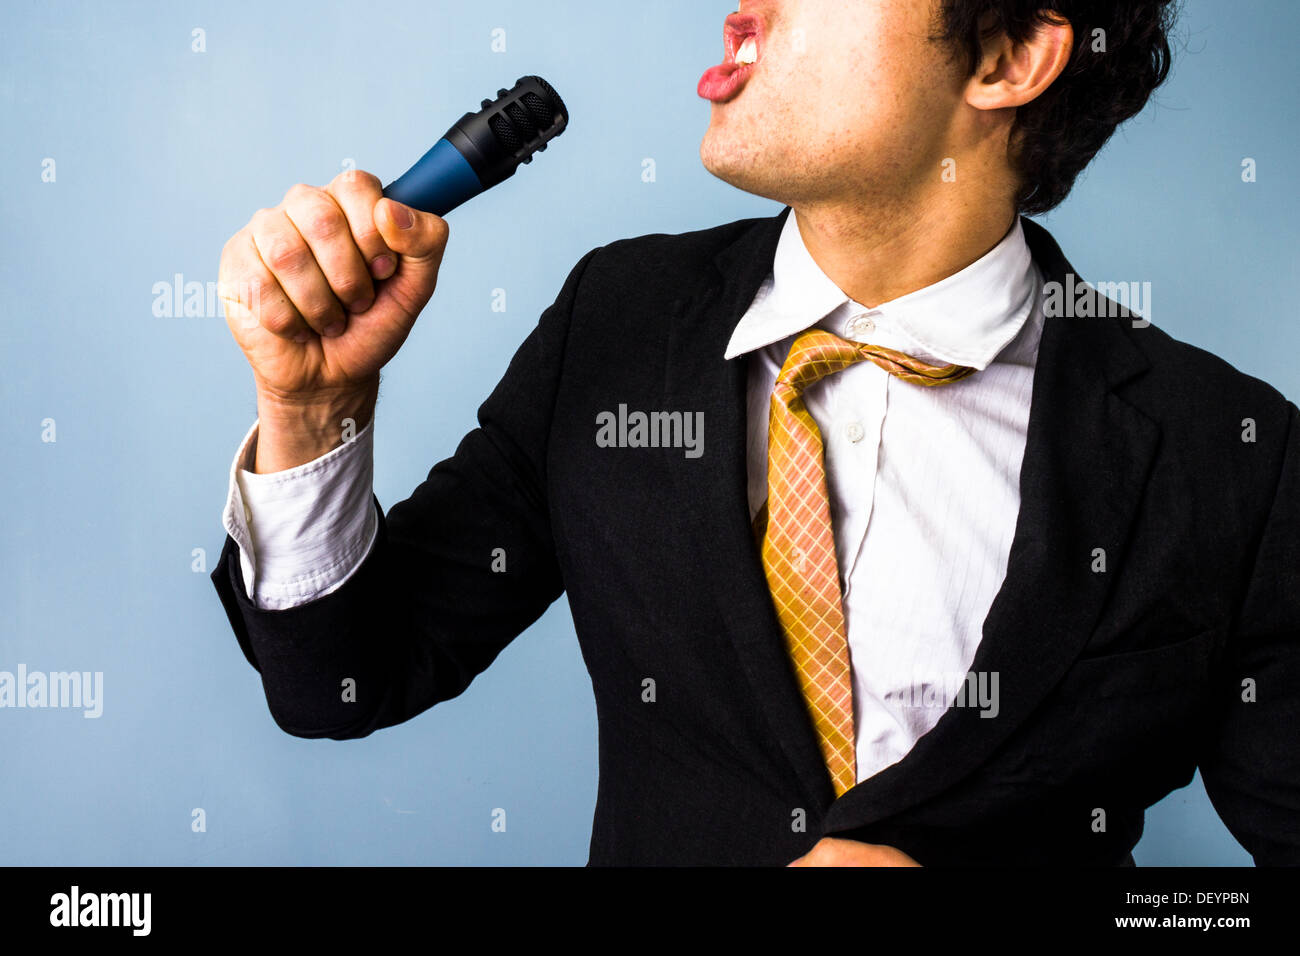 Young businessman with microphone is singing karaoke - Stock Image